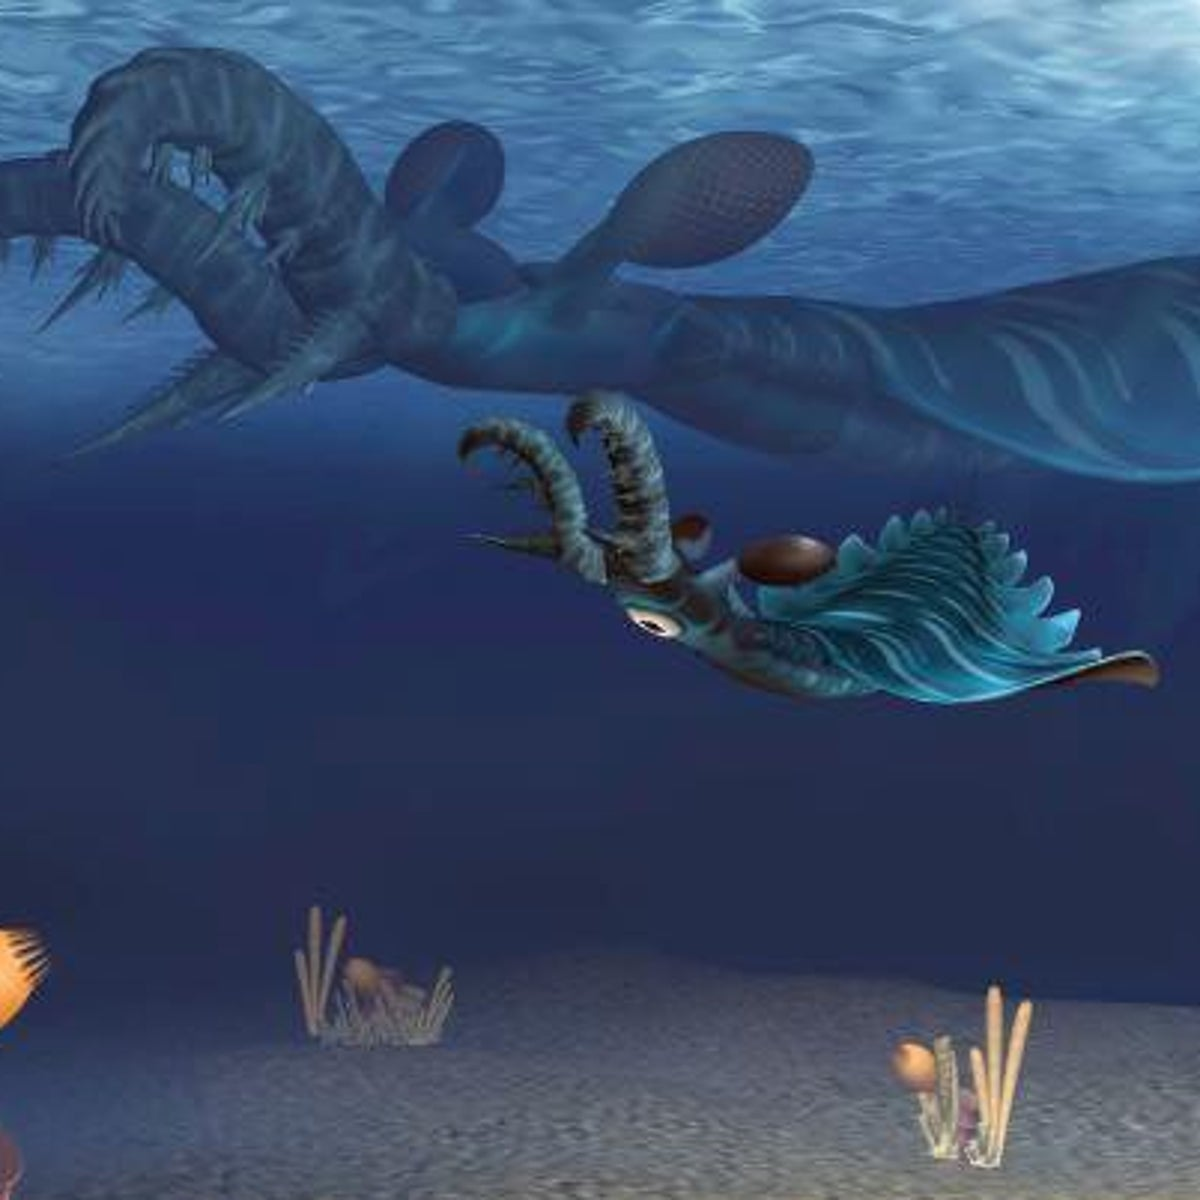 This is an artistic representation of juvenile (foreground) and adult (background) Lyrarapax unguispinus hunting in the water